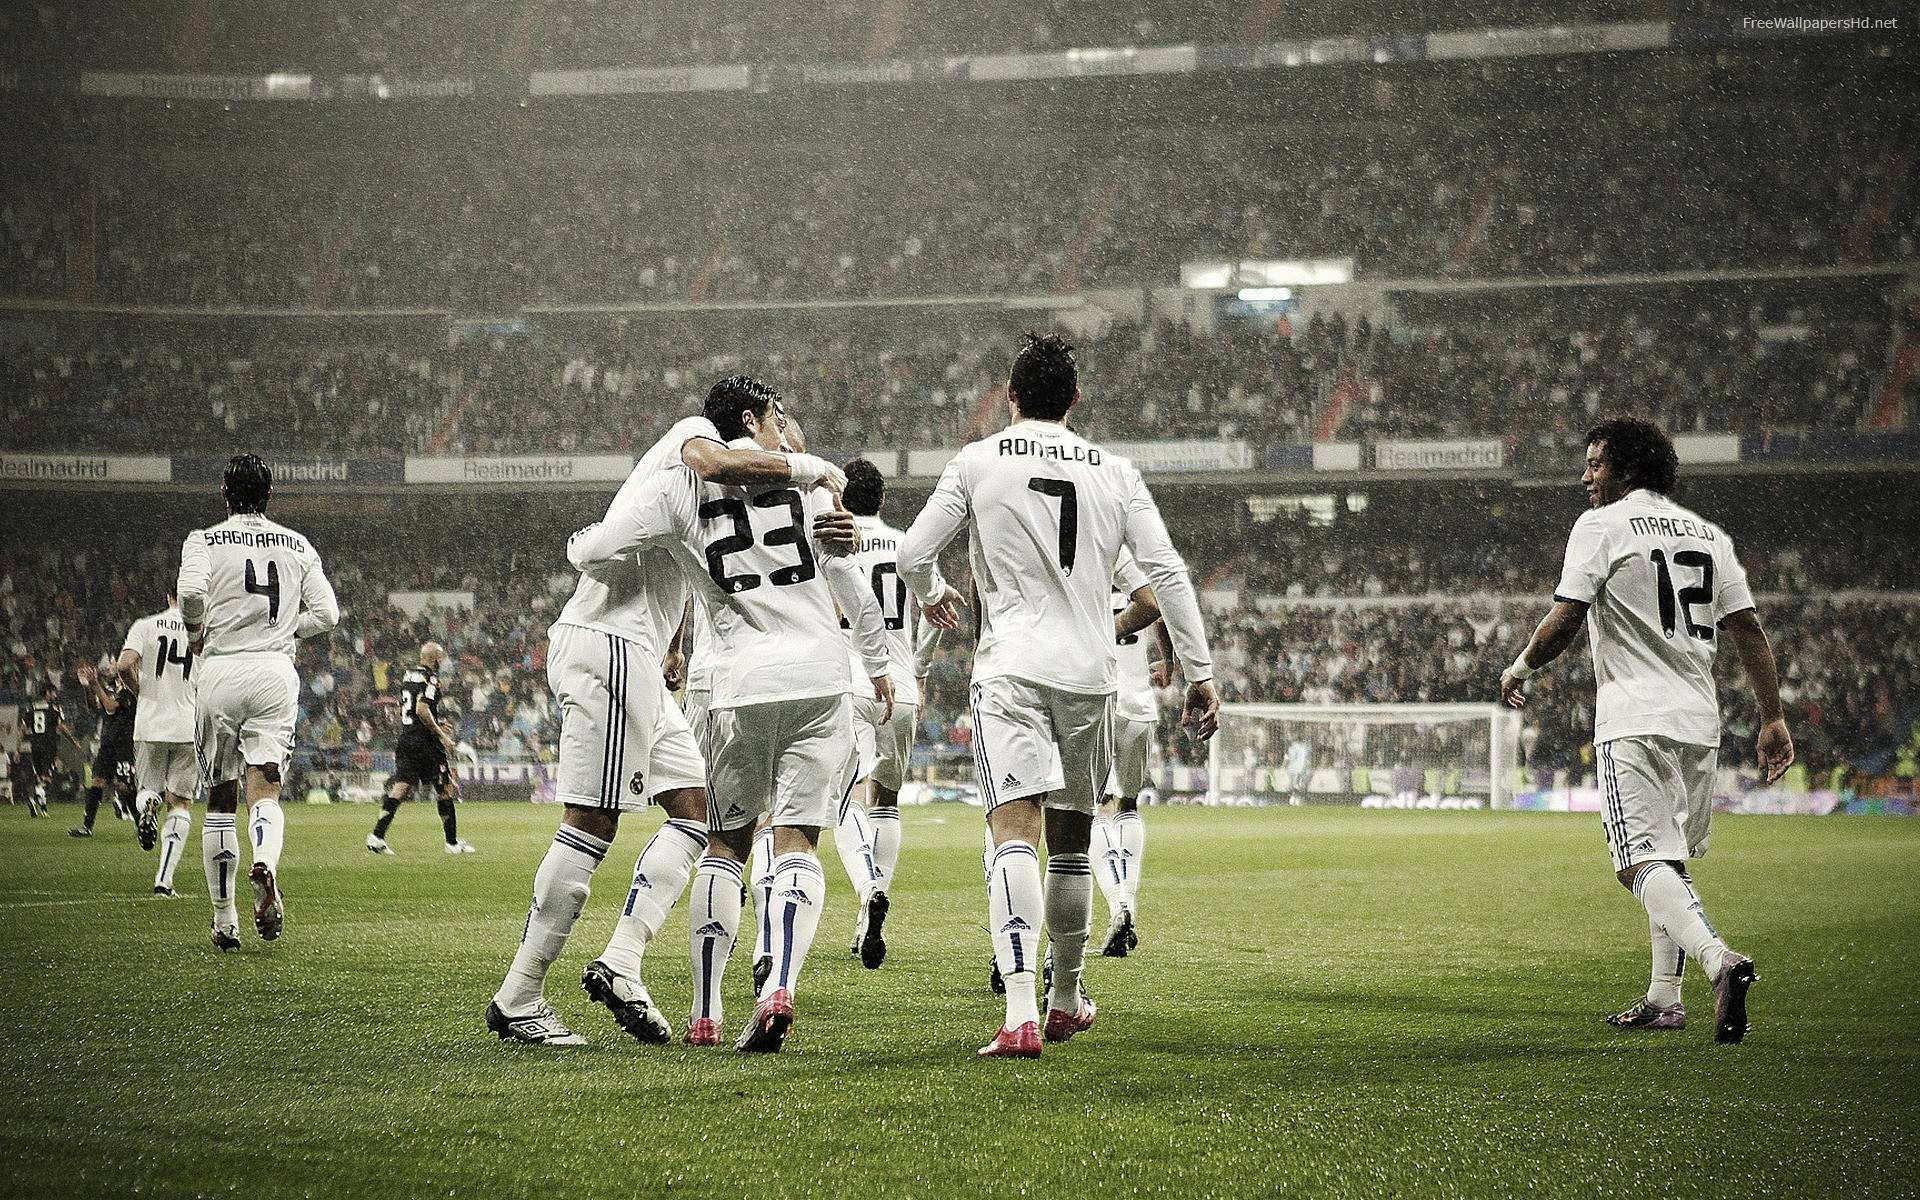 Real Madrid Wallpaper Android Smartphone #12599 Wallpaper | Cool ...